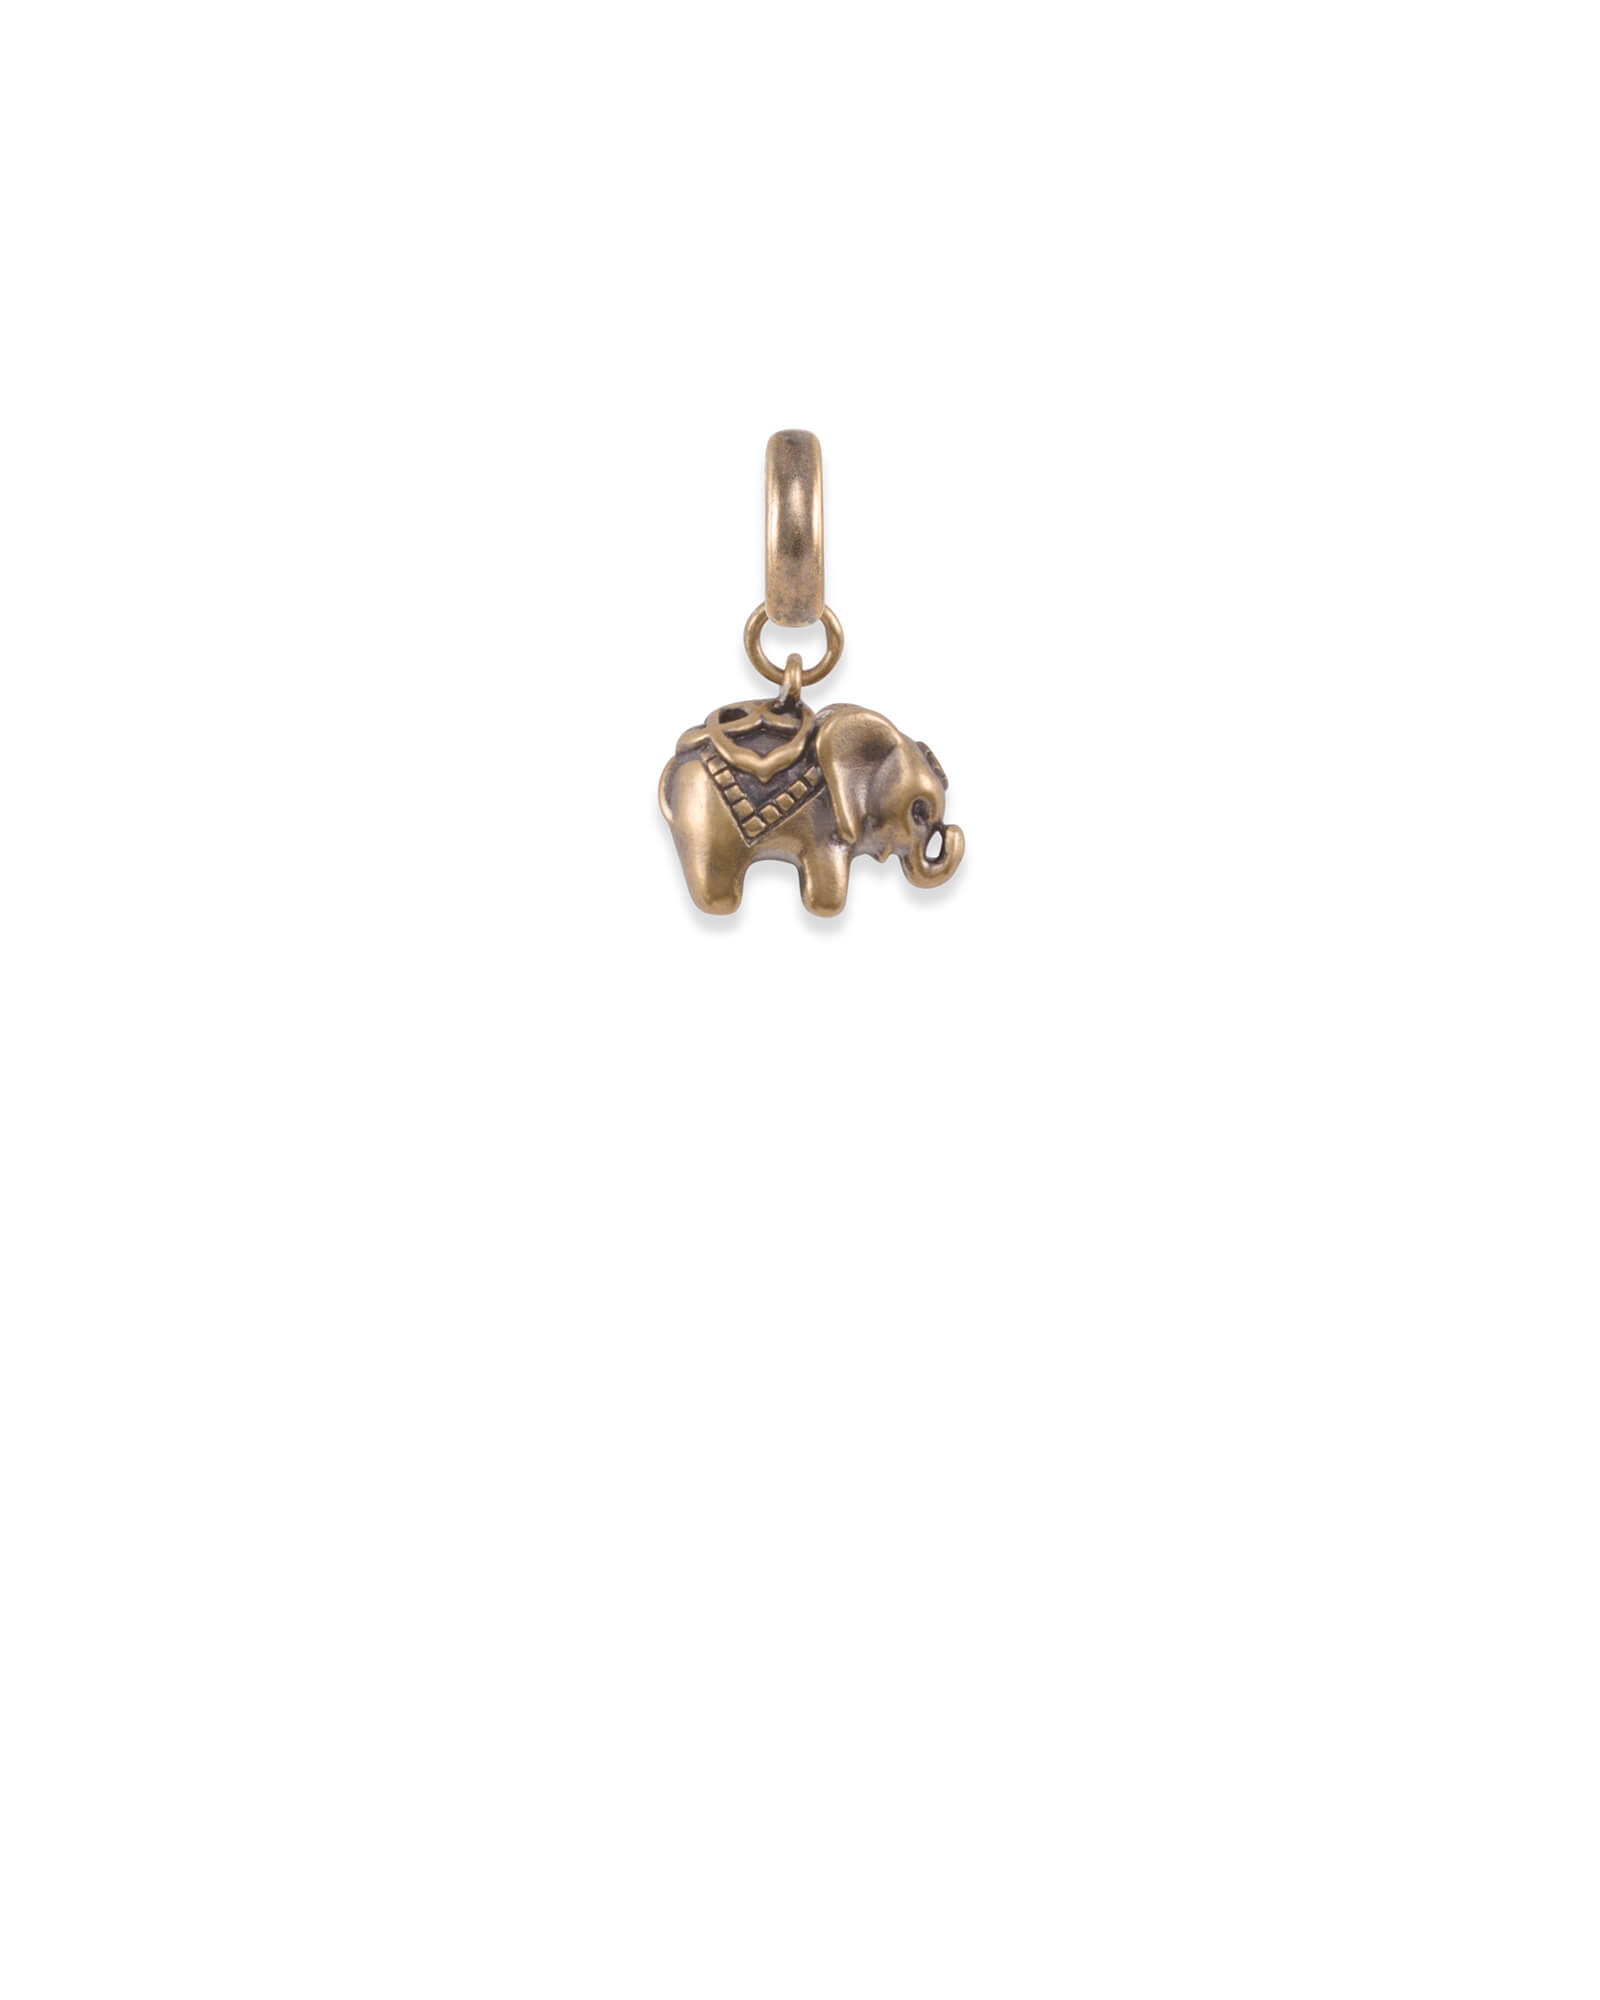 Elephant Charm in Vintage Gold